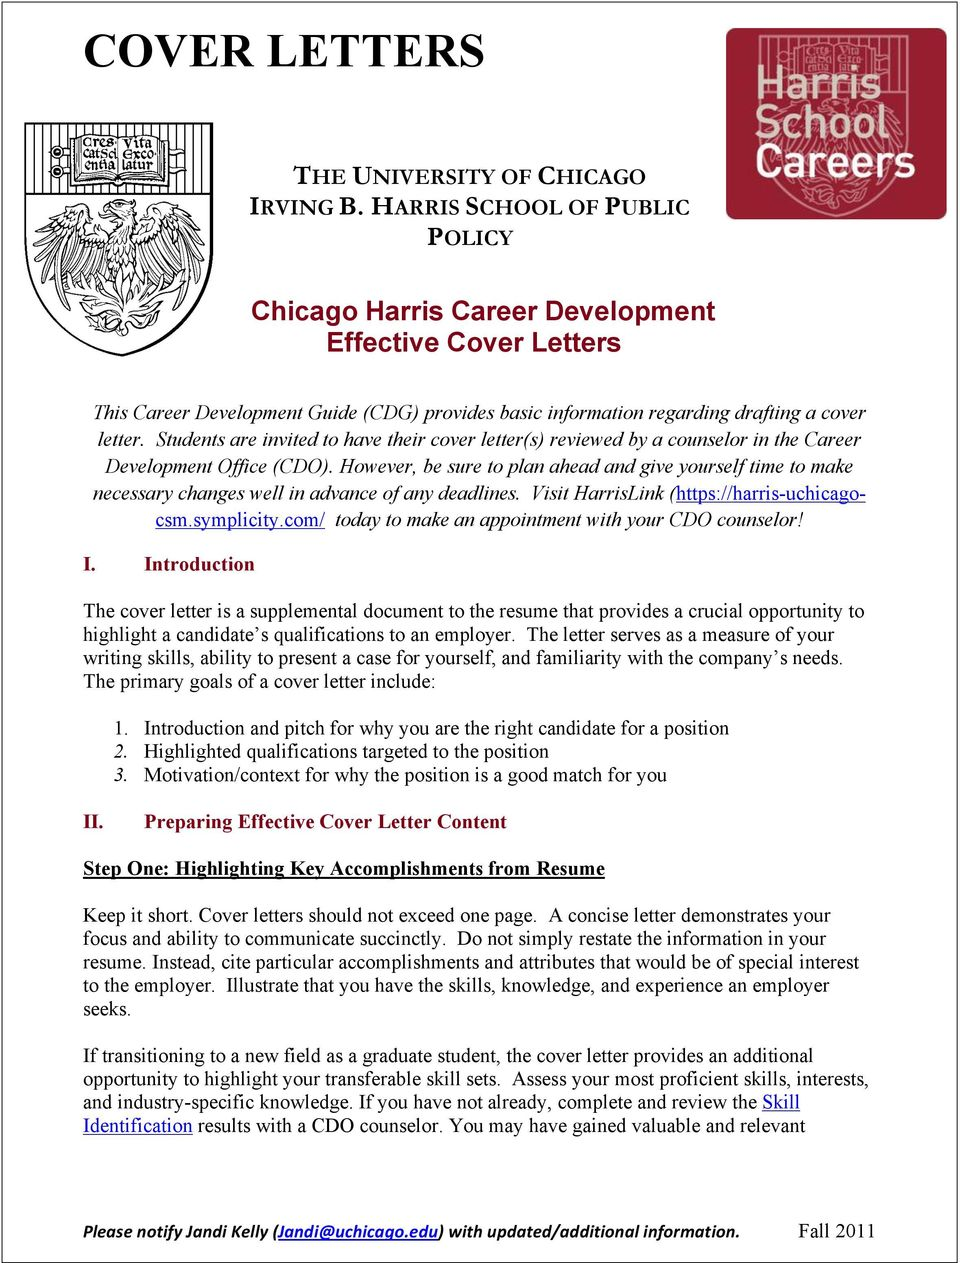 Students are invited to have their cover letter(s) reviewed by a counselor in the Career Development Office (CDO).